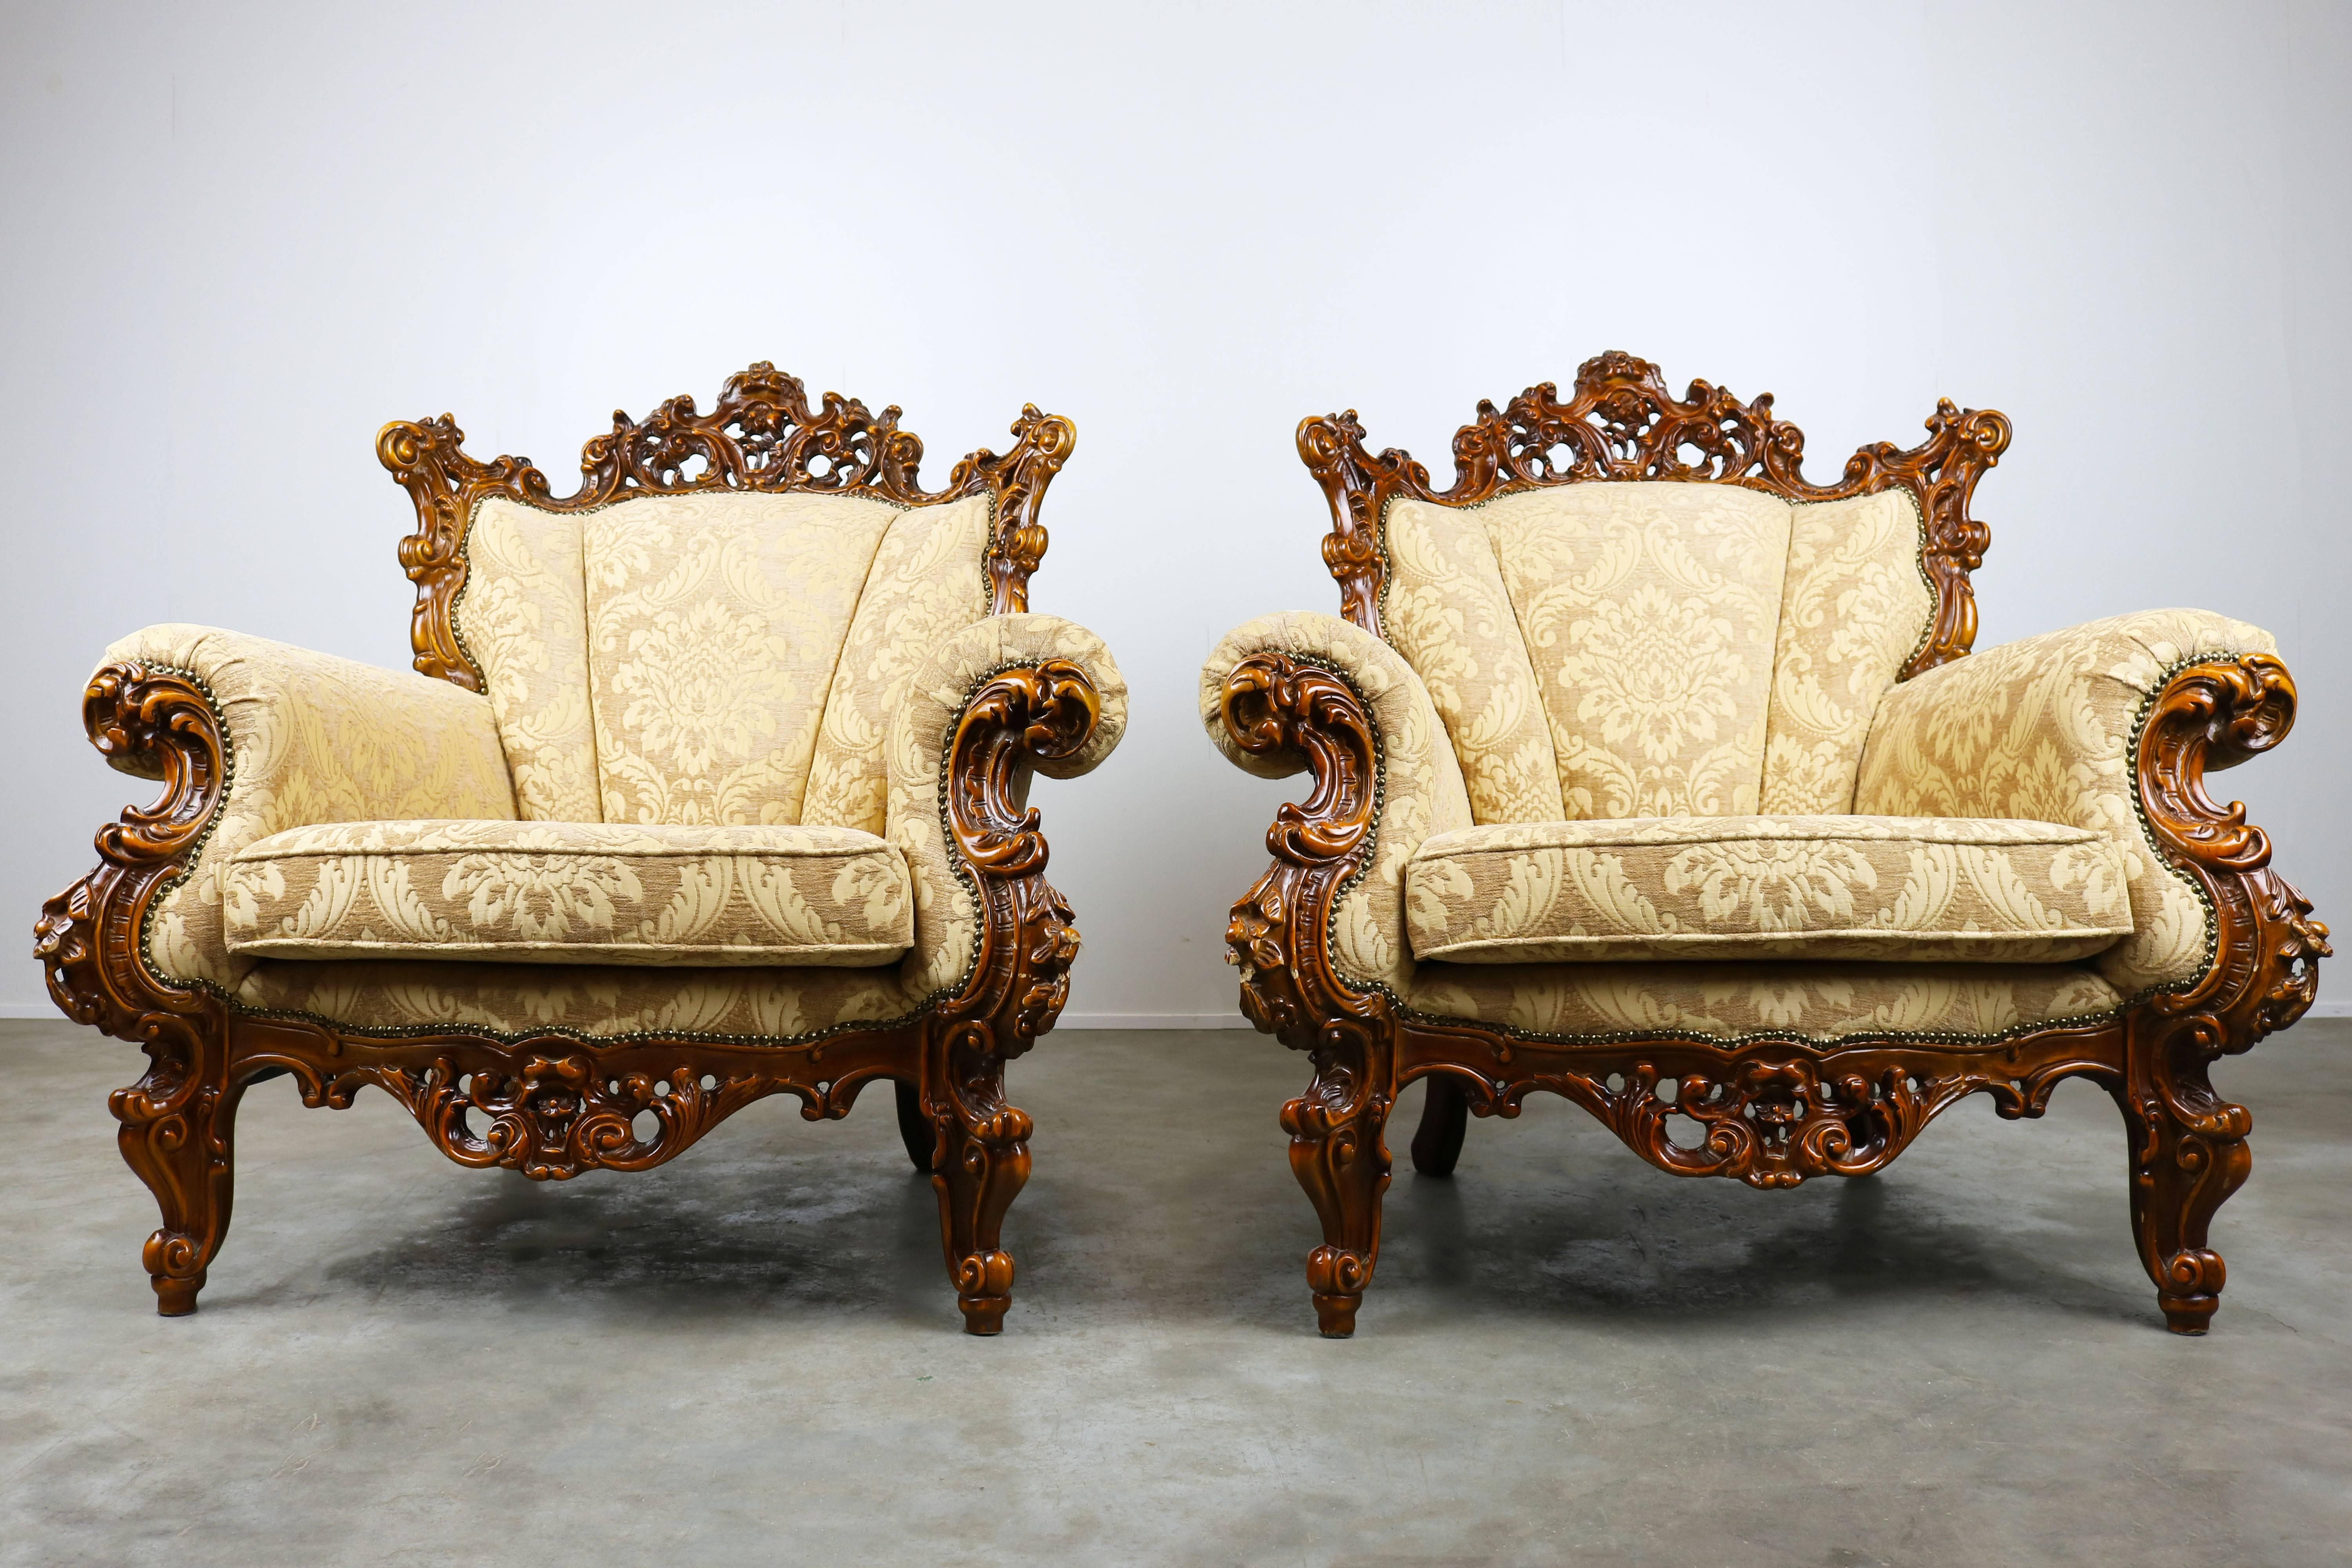 Charmant A Wonderful Pair Of Luxurious Antique Italian Lounge Chairs In Rococo /  Baroque Style. The